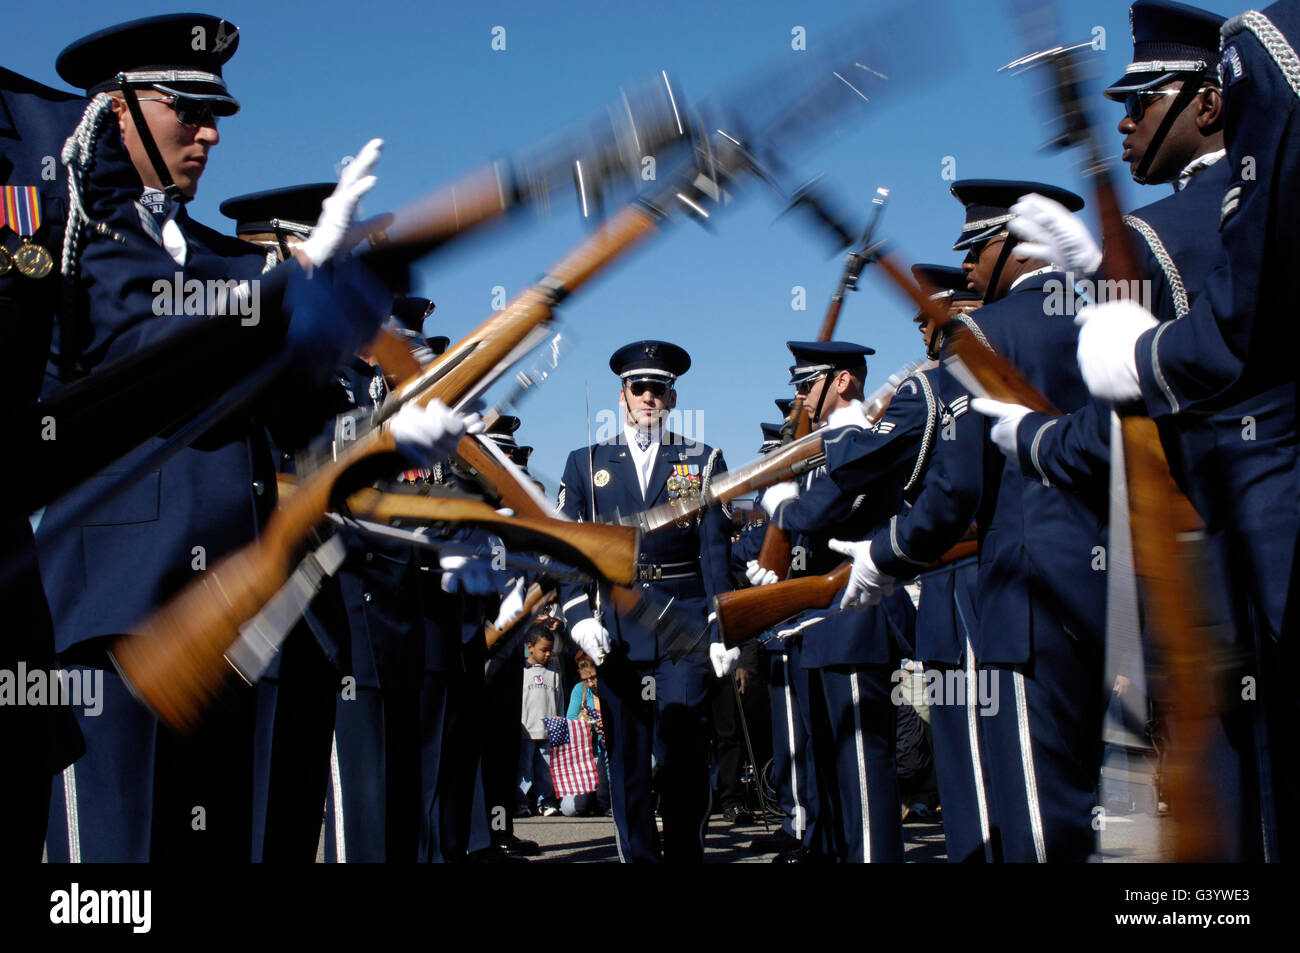 Members of the United States Air Force Drill Team perform. - Stock Image